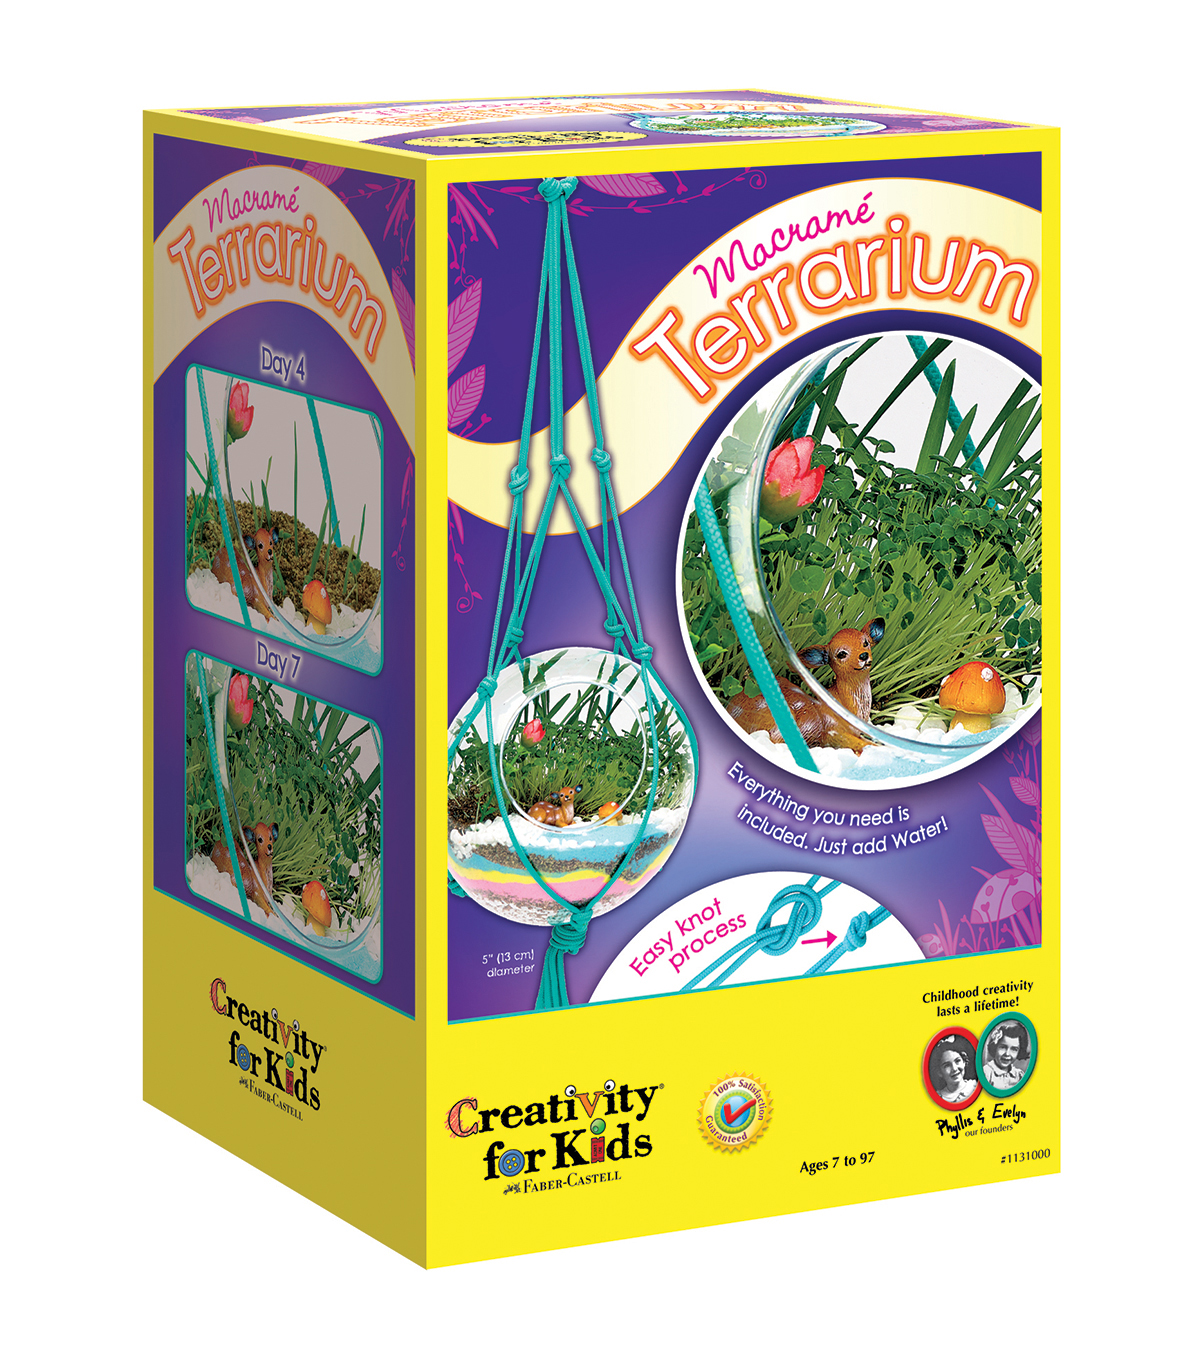 Creativity for Kids Macrame Terrarium Kit